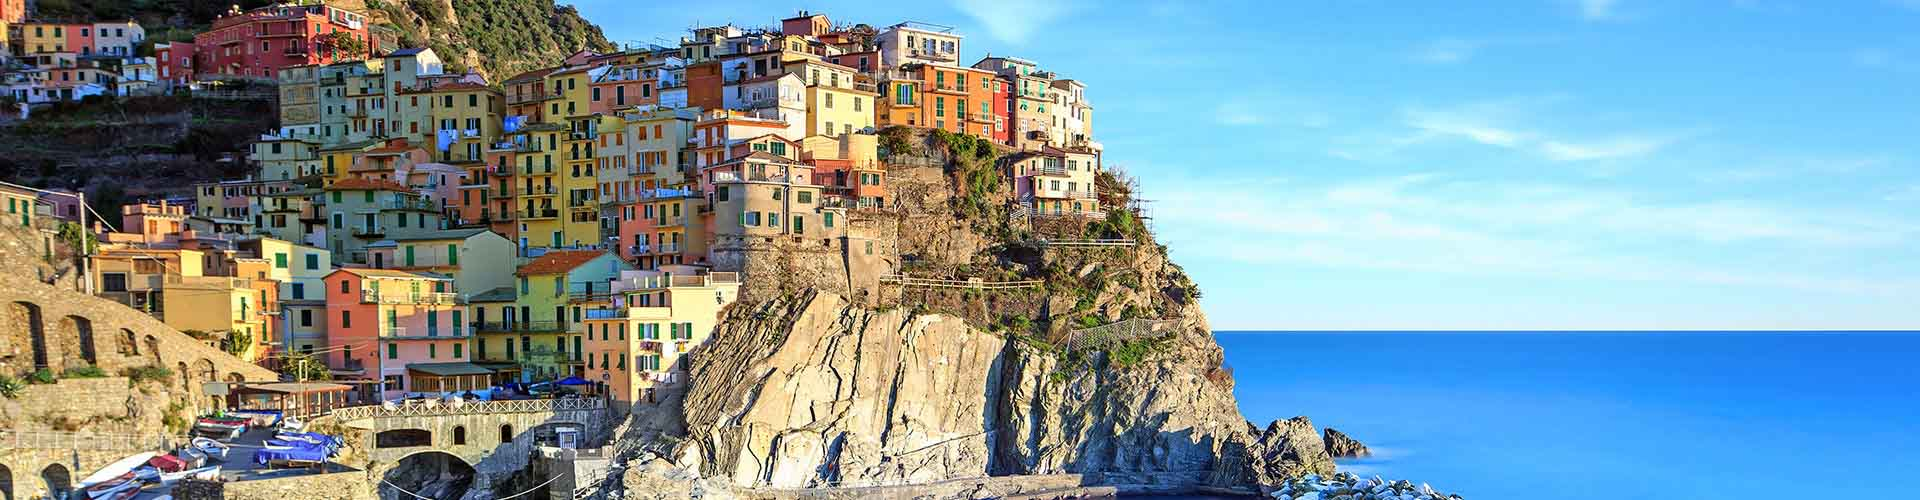 Cinque Terre – Hostels in Cinque Terre. Maps for Cinque Terre, Photos and Reviews for each hostel in Cinque Terre.